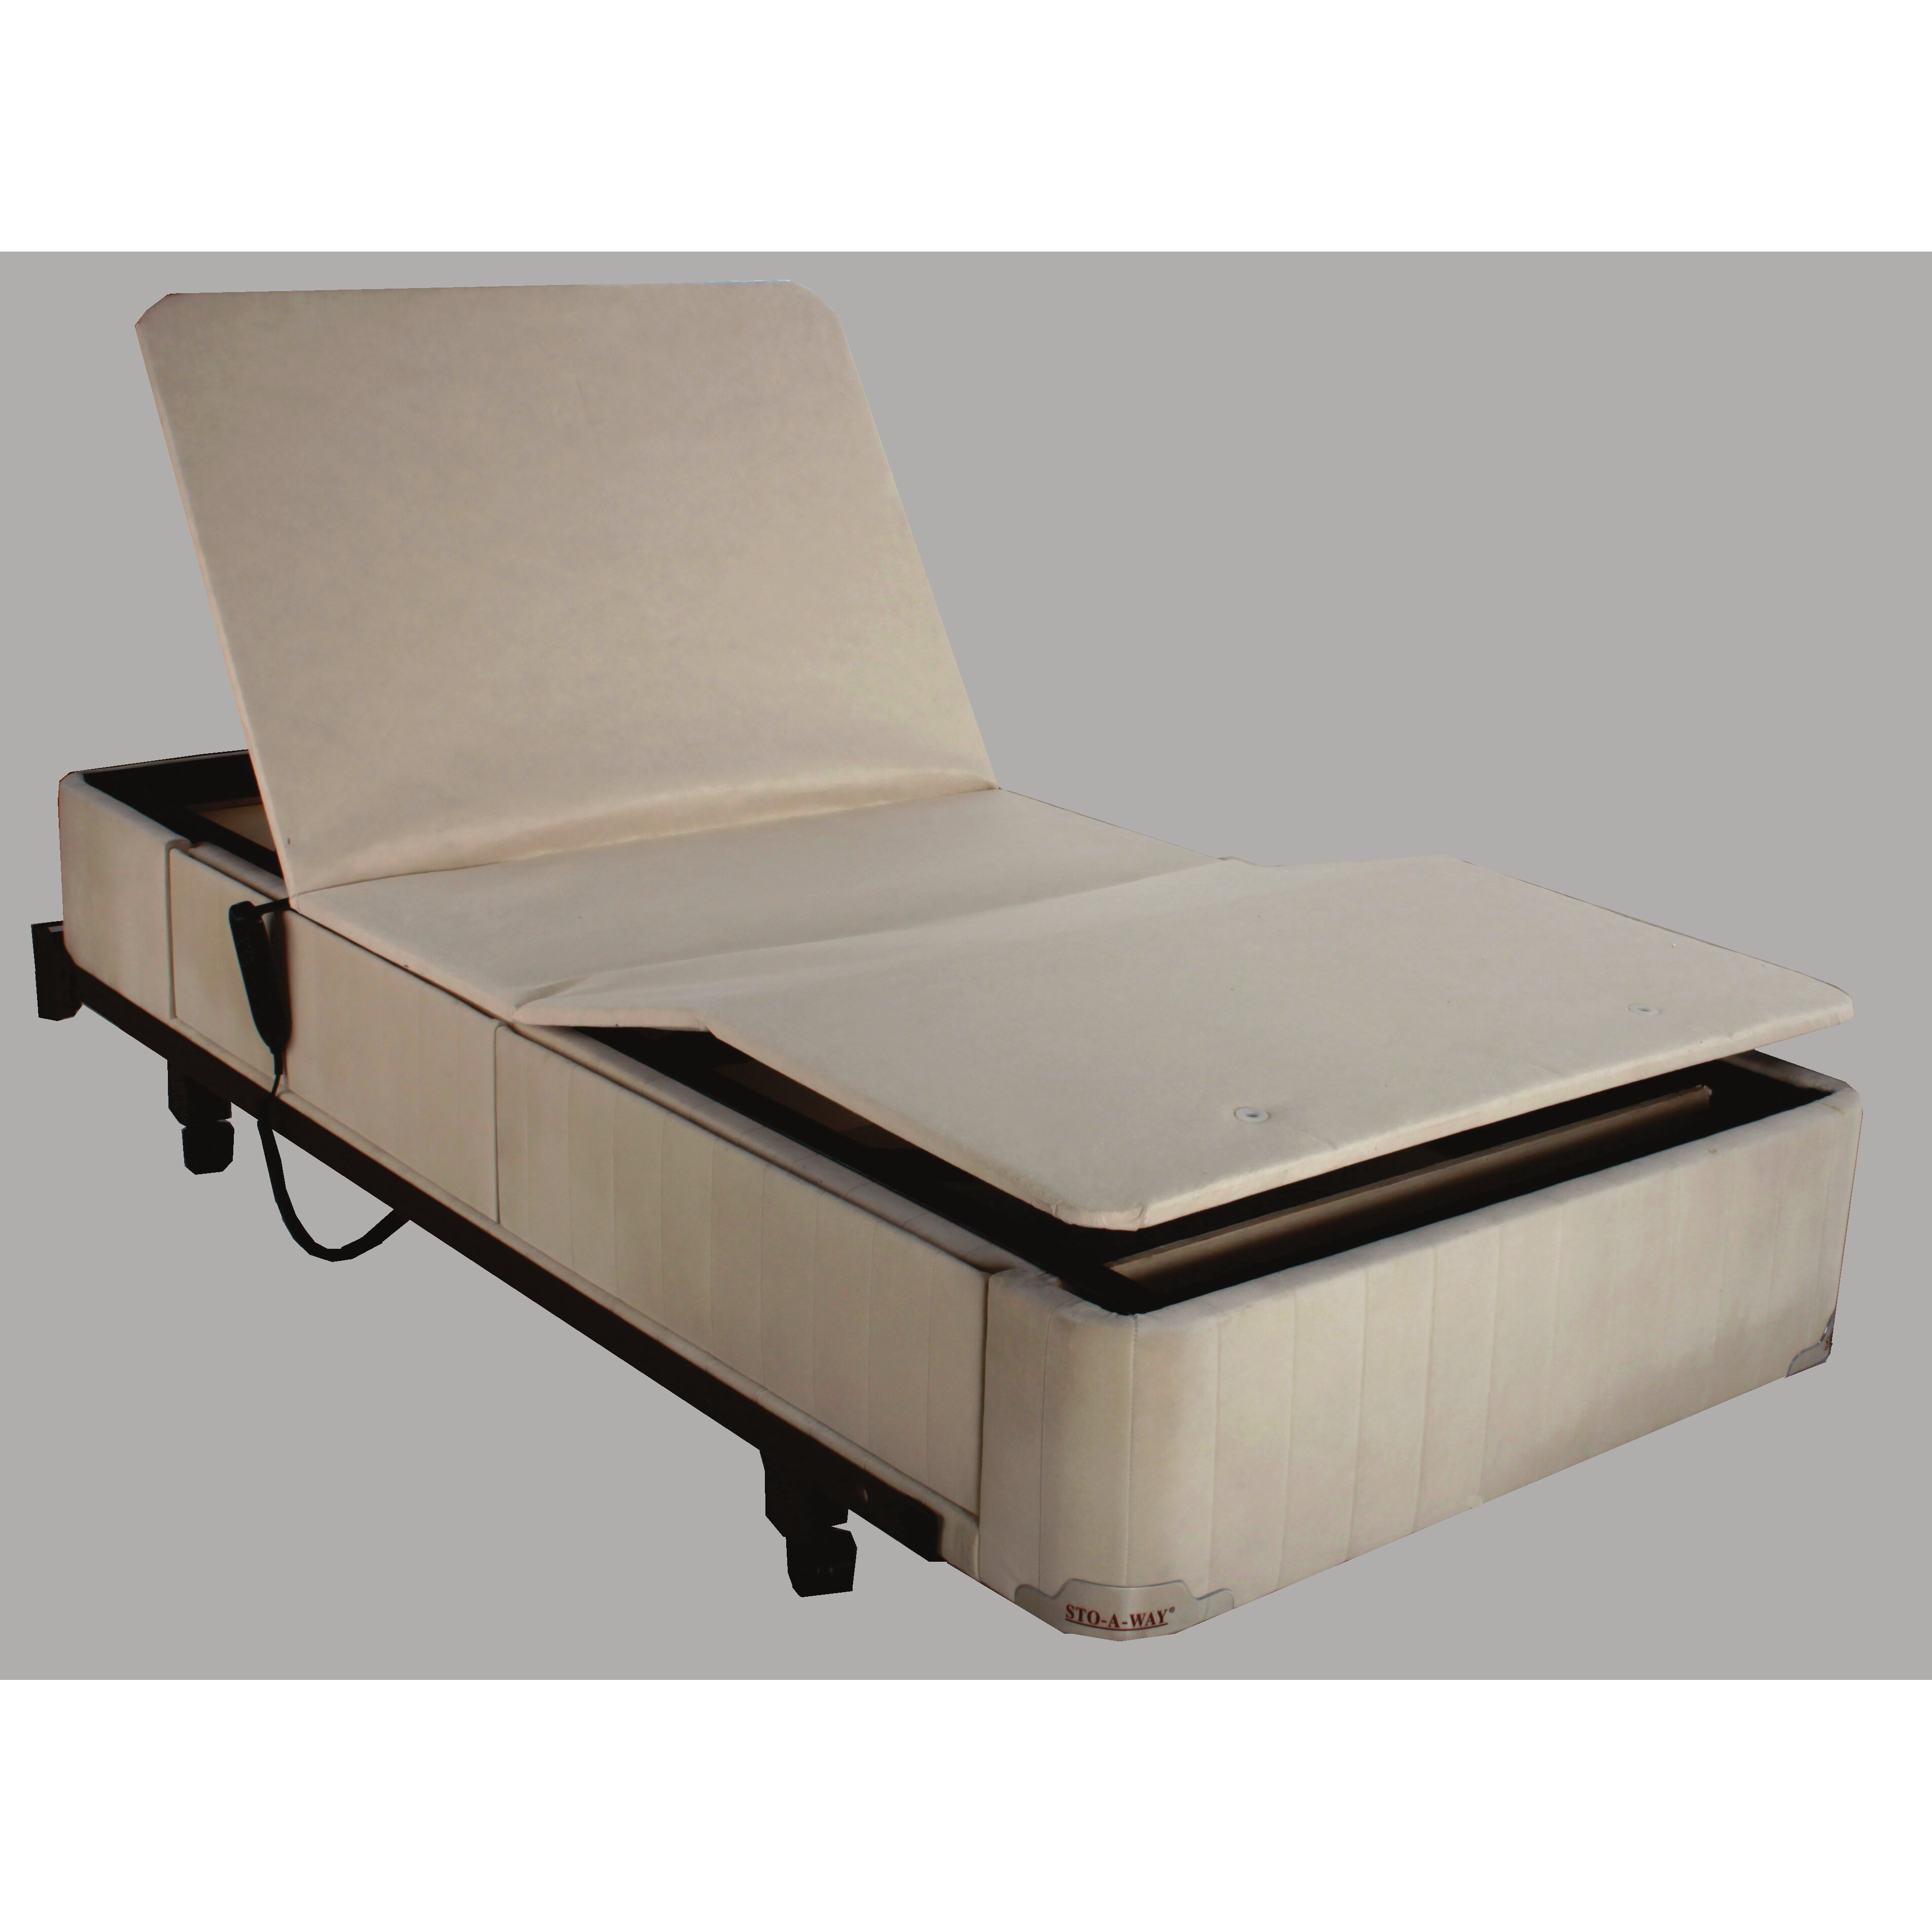 Seahawk Designs Full Electric Twin Extra Long Upholstered